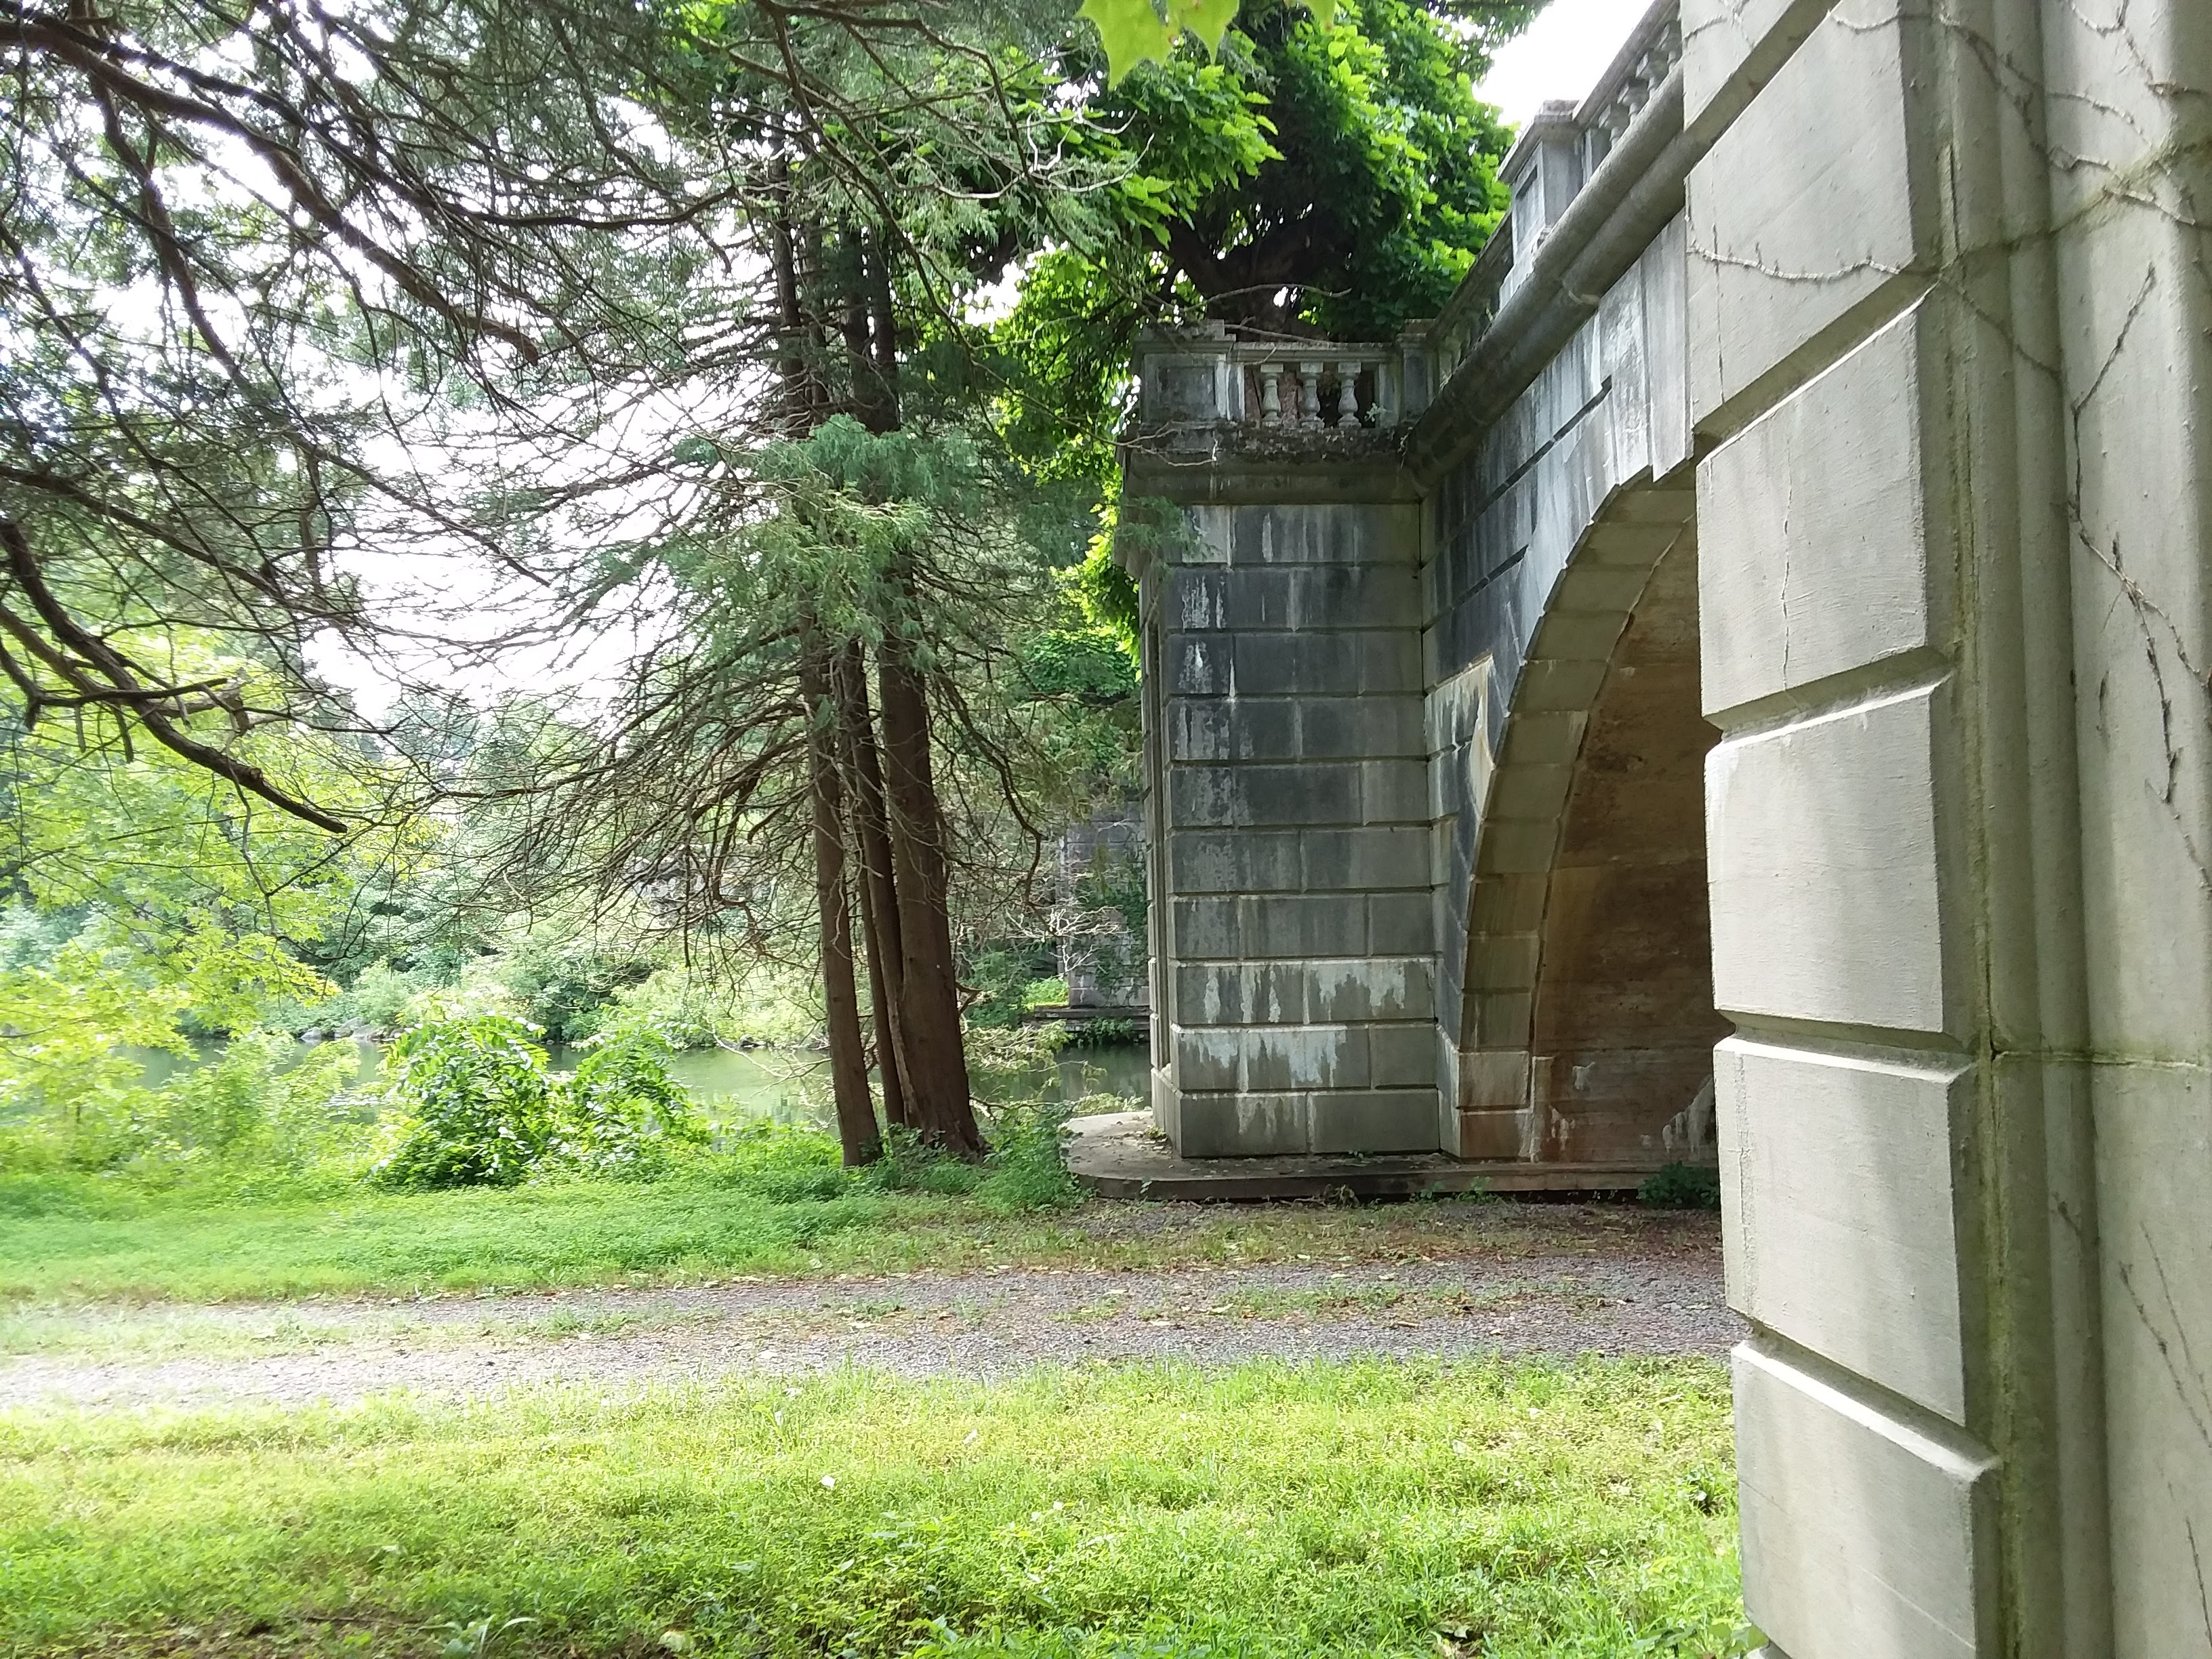 A stone bridge with overlooking a body of water obscured by trees and their overhanging branches